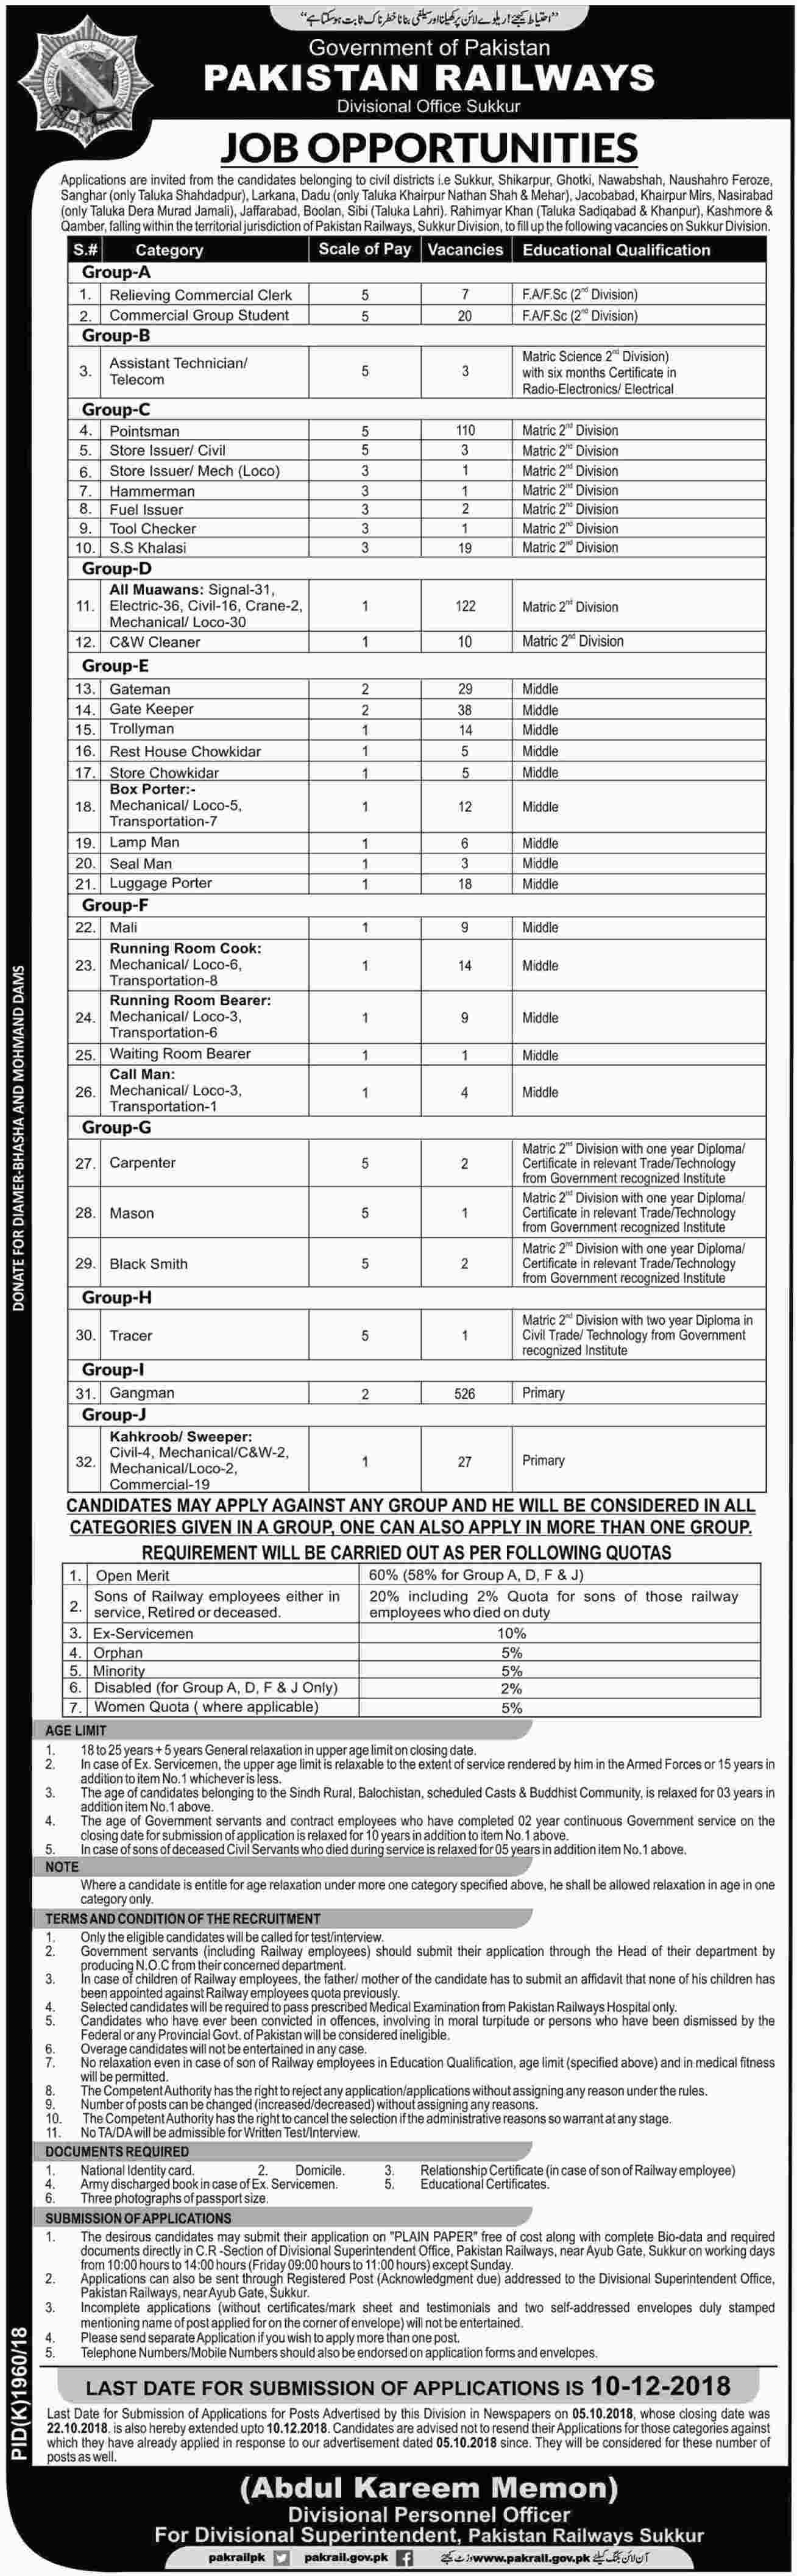 Division Sukkur Jobs Pakistan Railways 27 November 2018